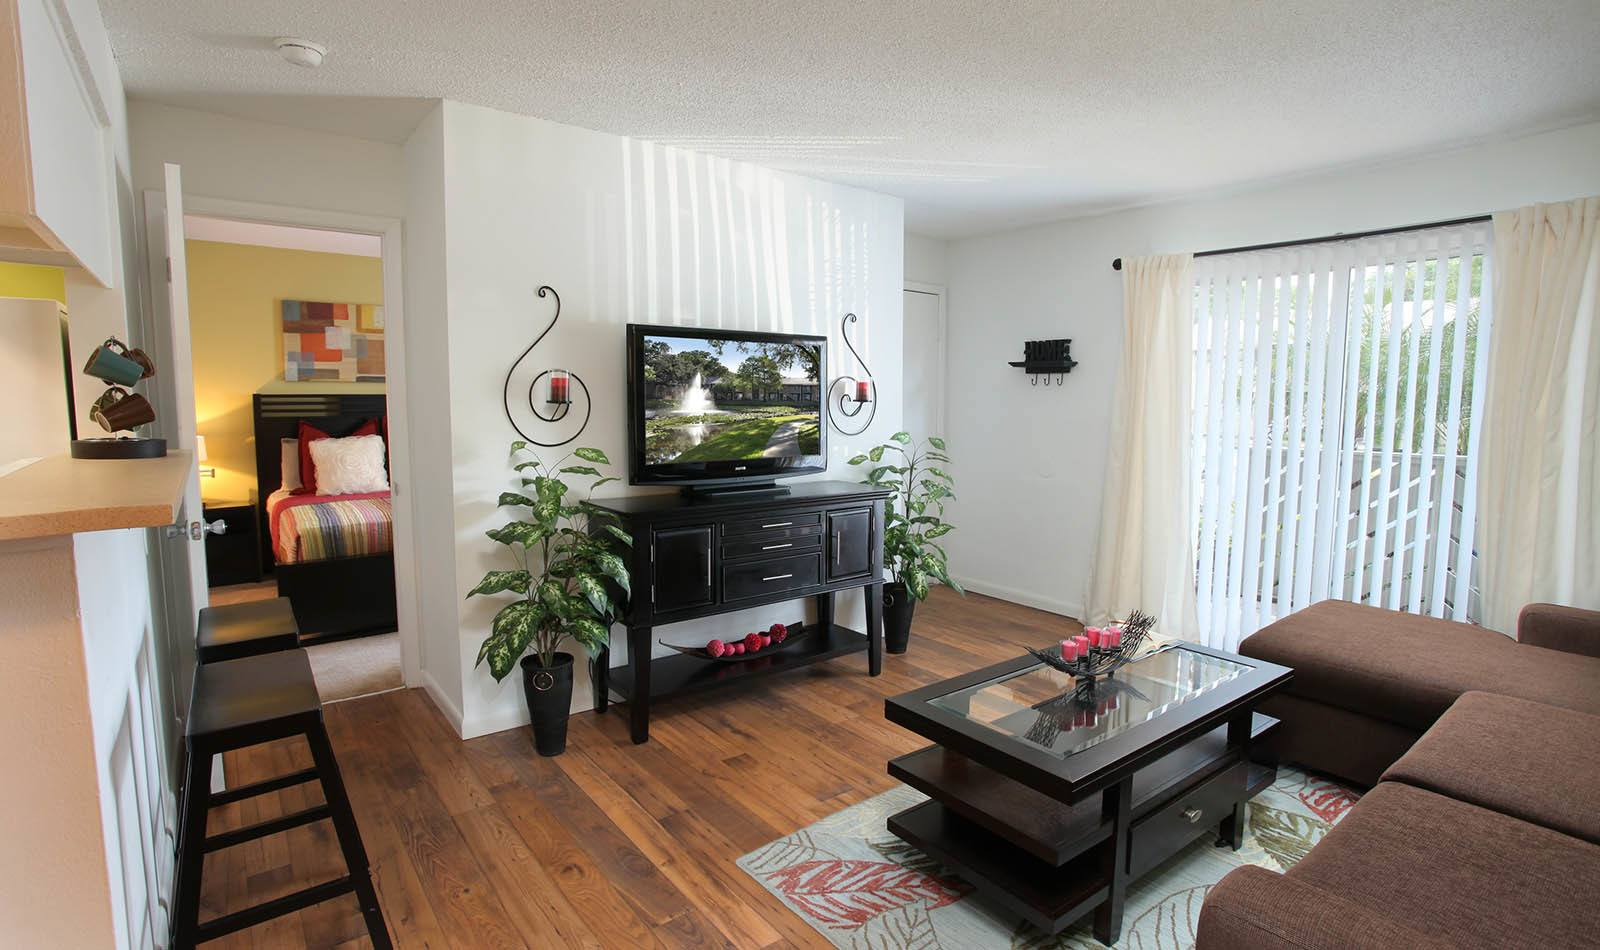 Living room at apartments in Tampa, FL